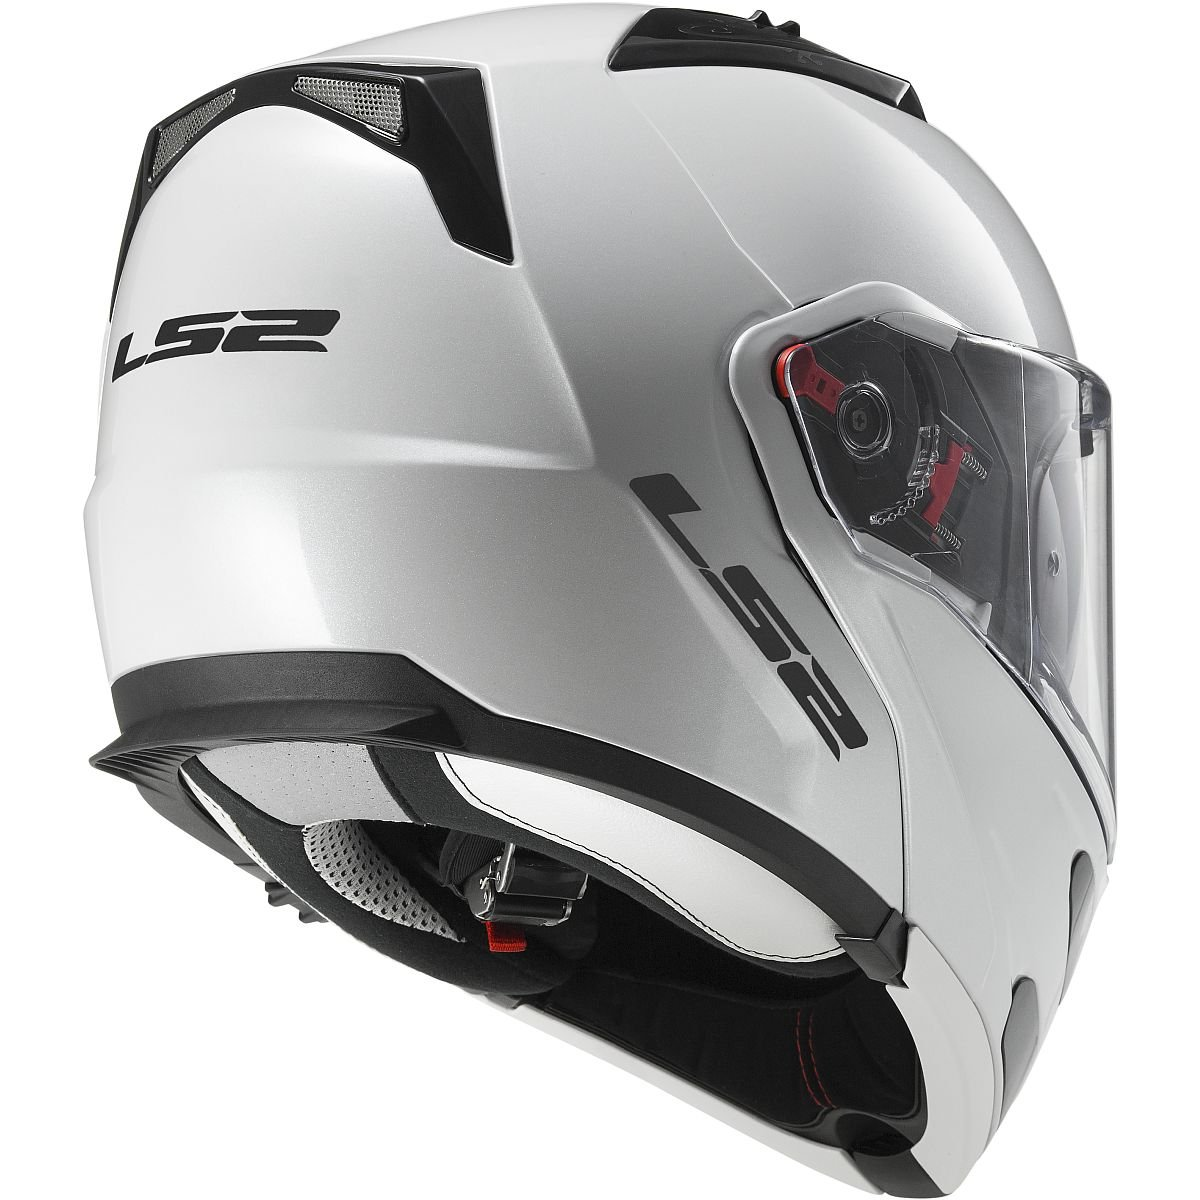 Amazon.com: LS2 Helmets Metro Solid Modular Motorcycle Helmet with Sunshield (White, X-Small): Automotive